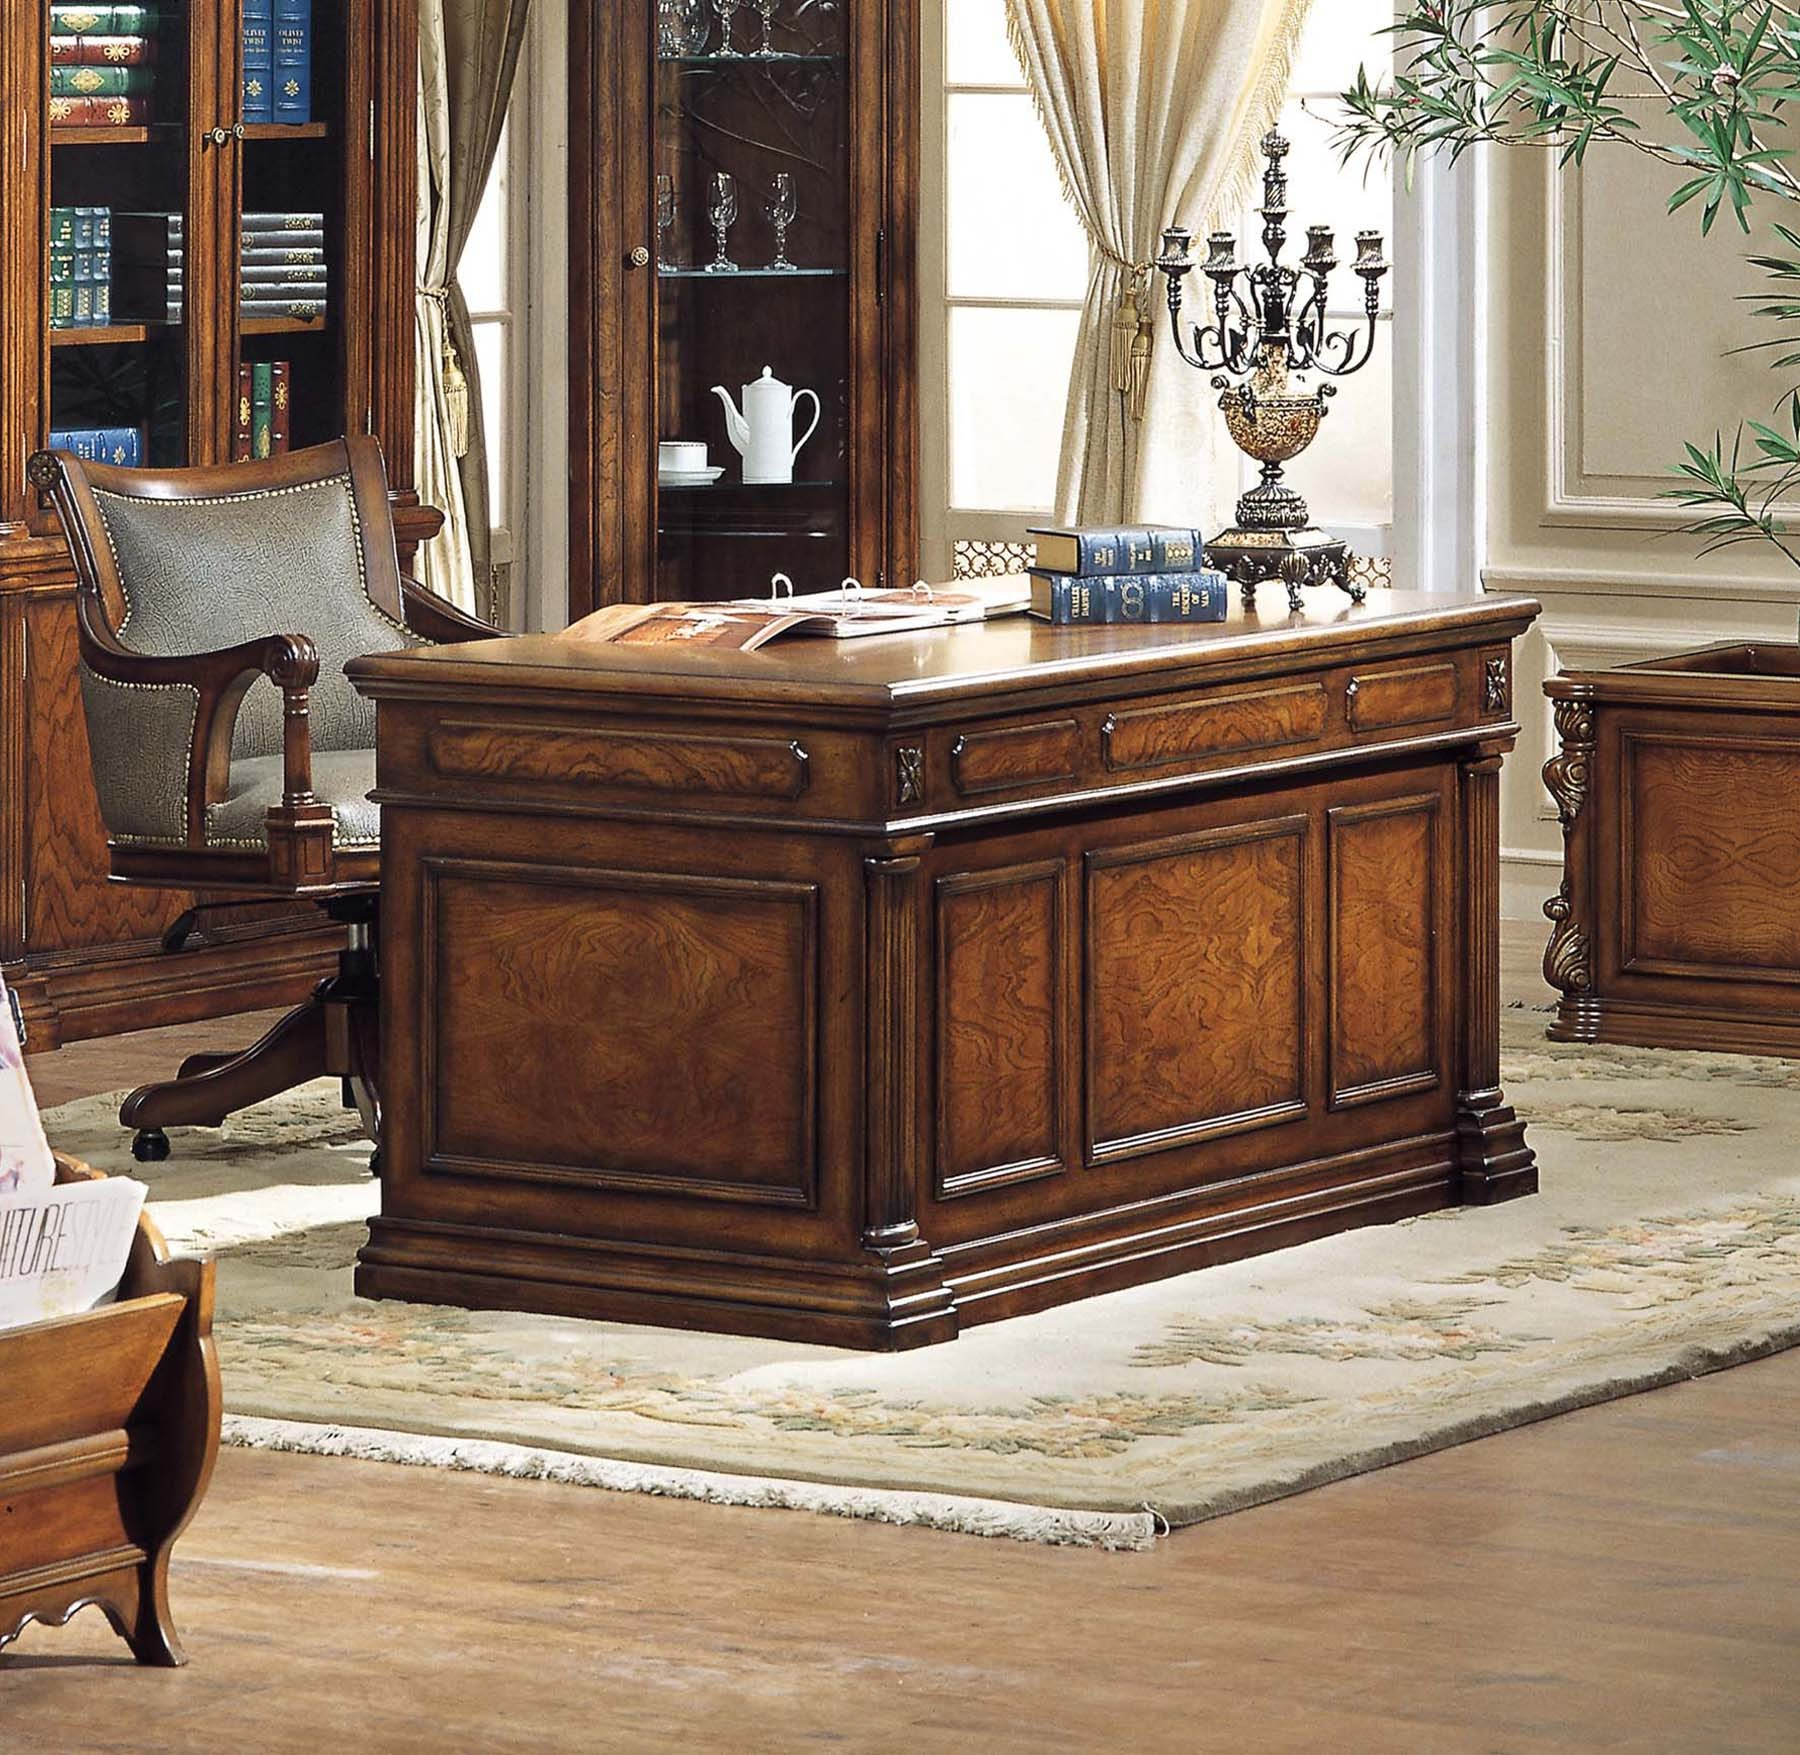 Image of: Wonderful Antique Executive Desk